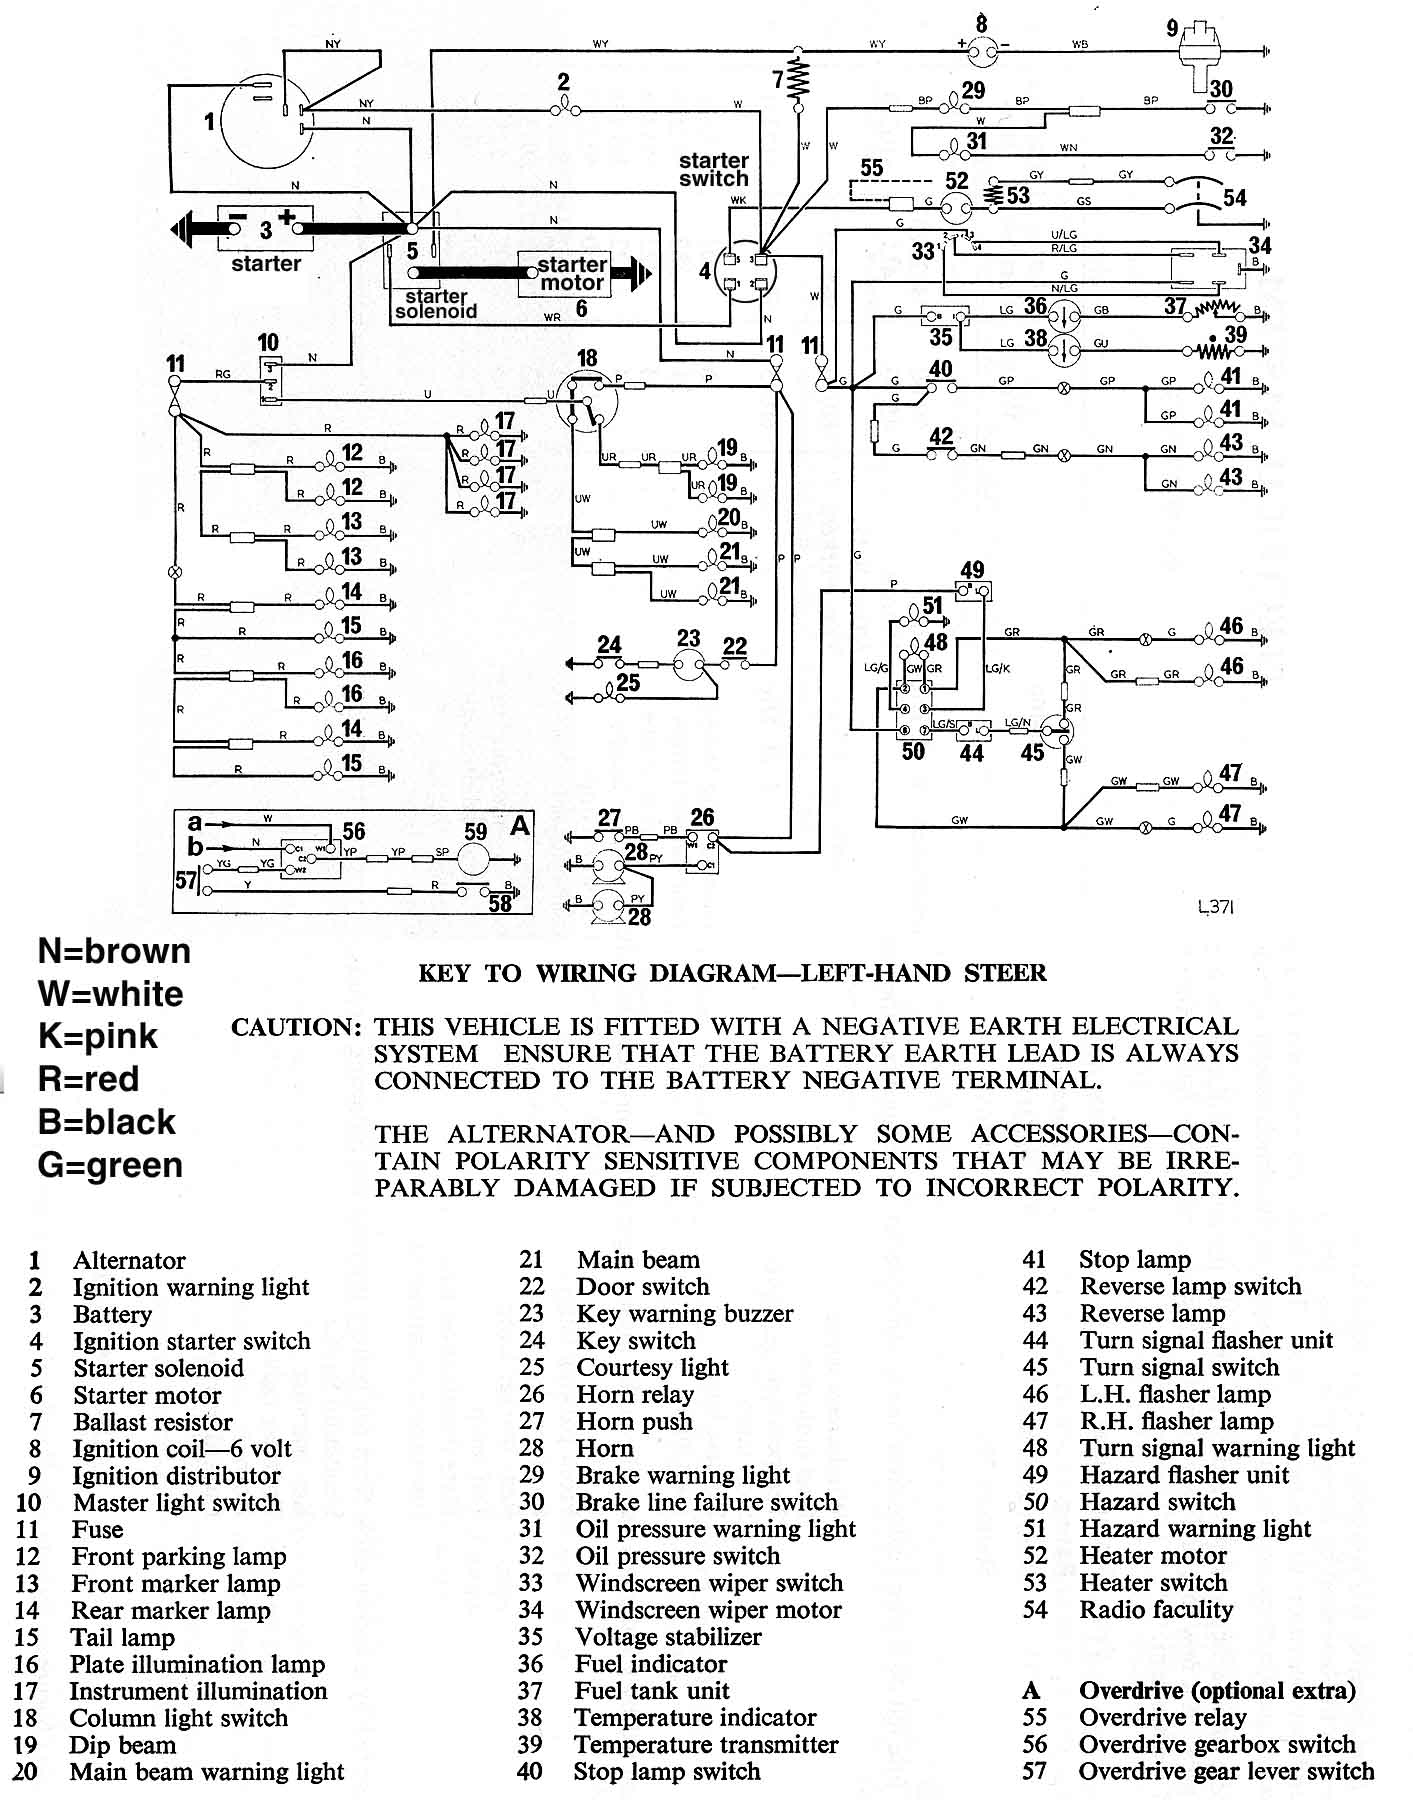 2222159 1972 Coupe Base Engine Fuse Panel Diagram additionally 79 Silverado Fuse Box besides 1968 Vw Beetle Wiring Diagram in addition I Need A Wiring Diagram For 1975 Corvette as well Relays. on 1980 mgb wiring diagram